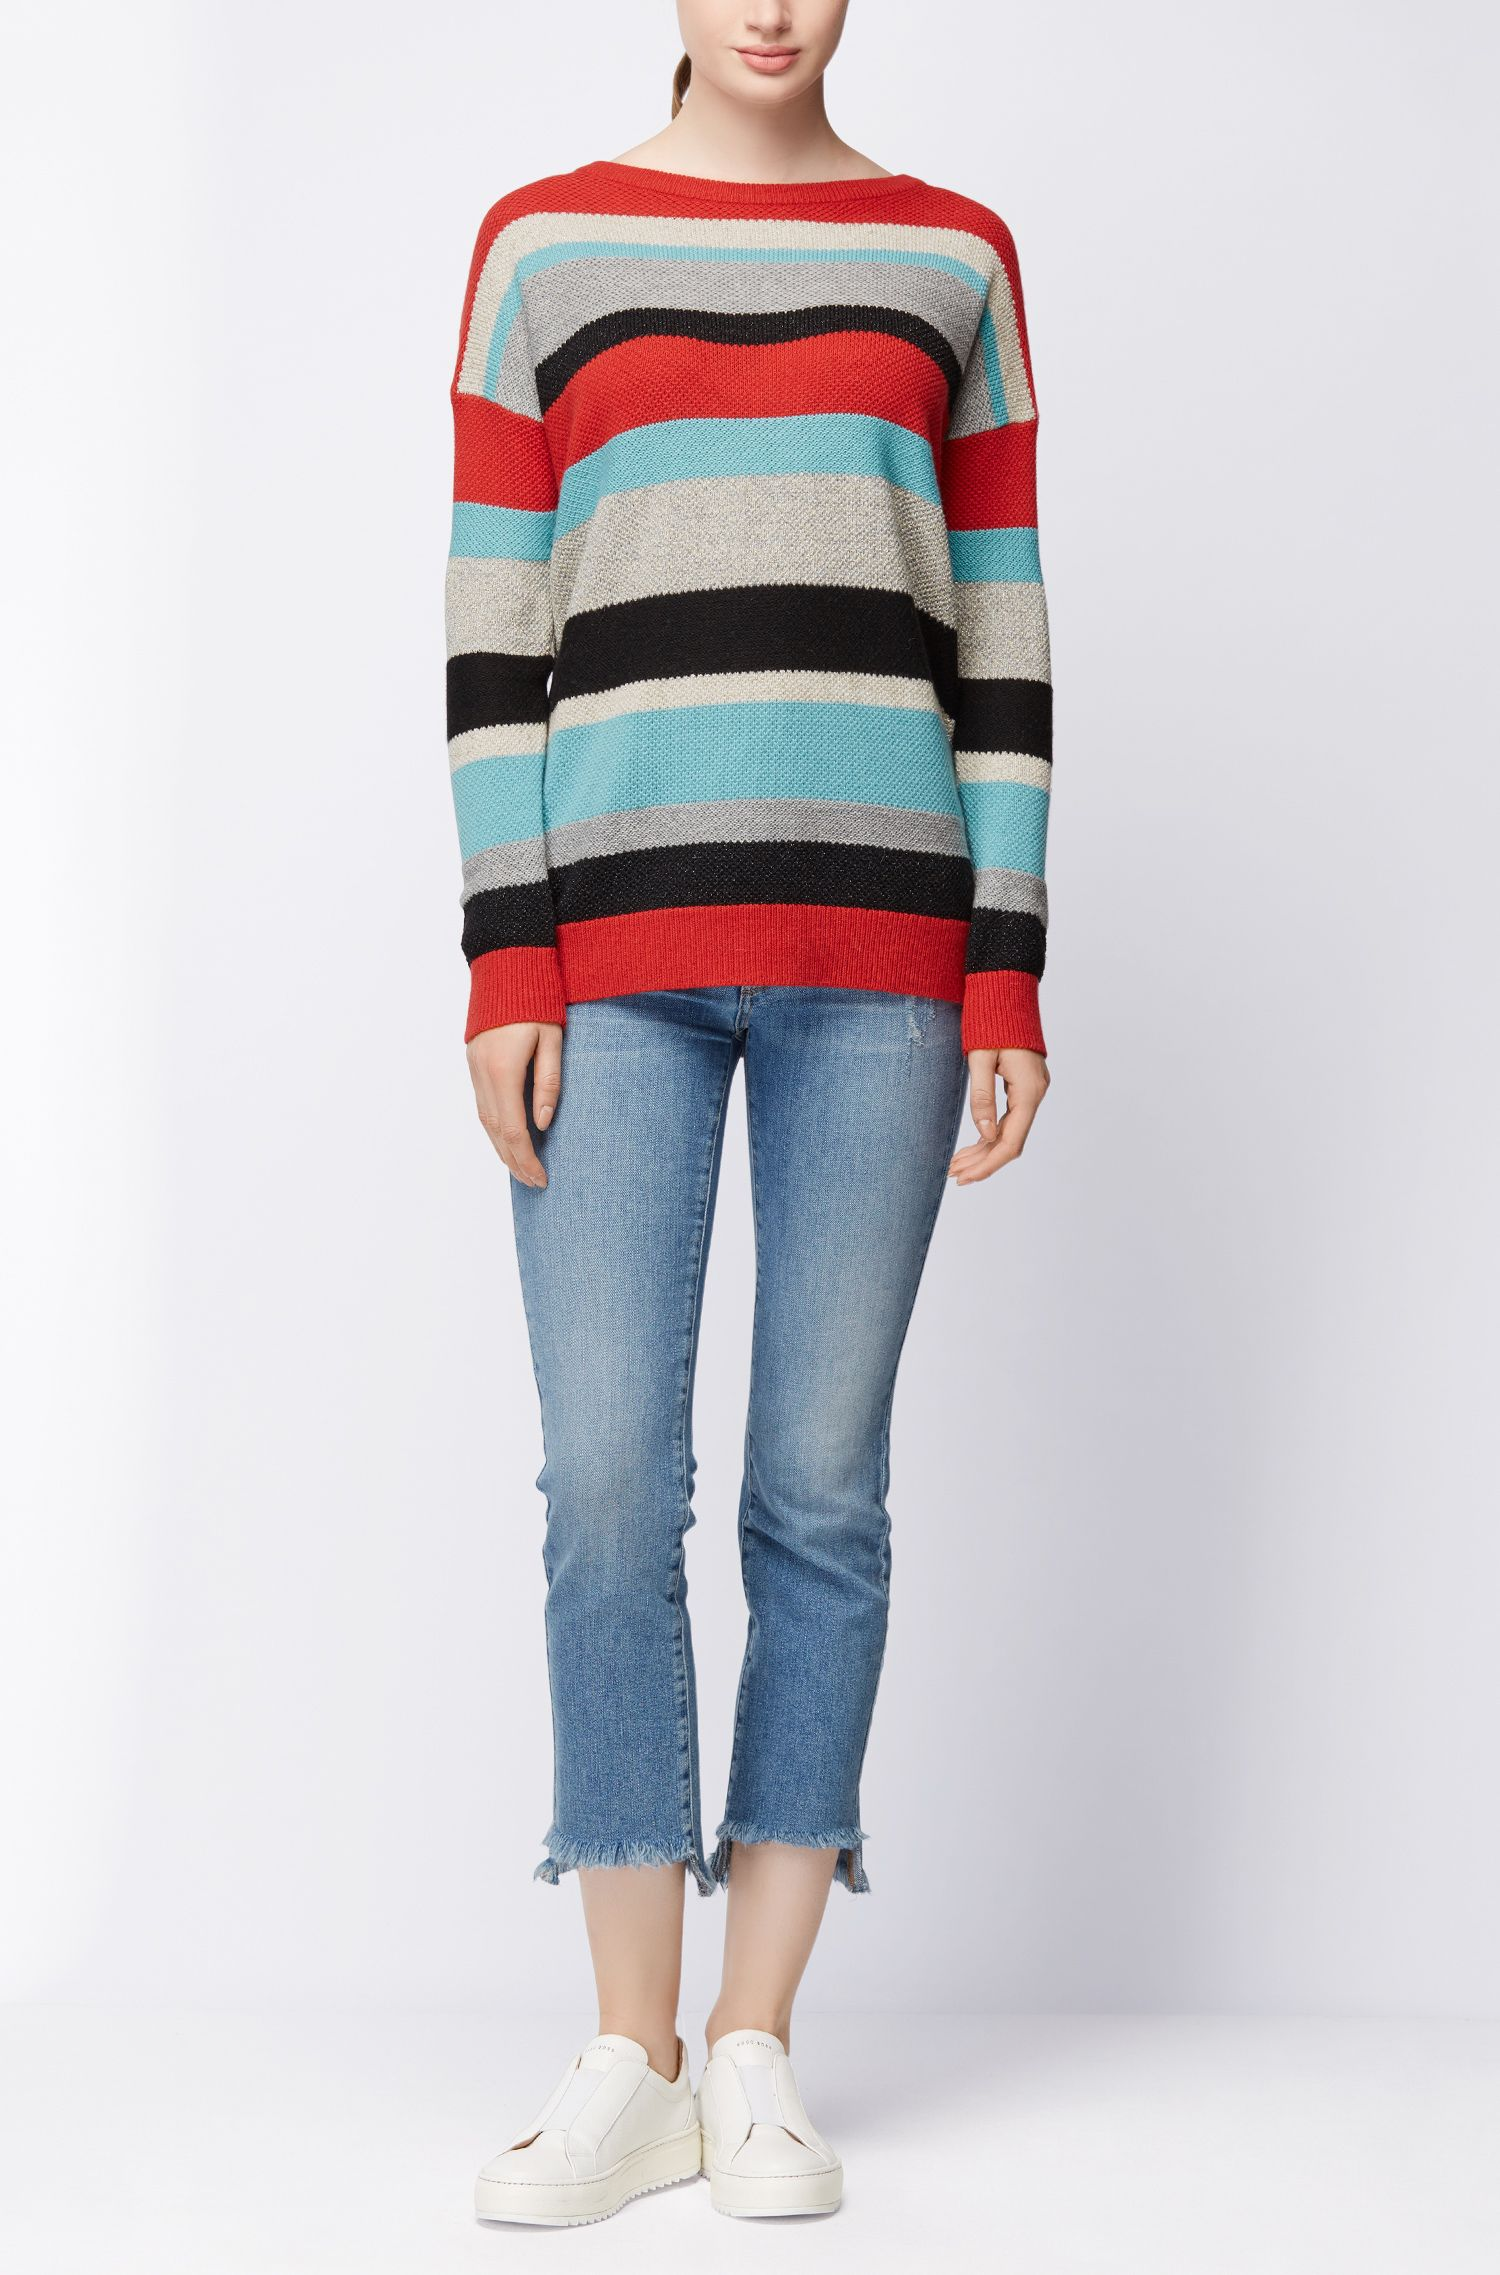 Multi-colour striped sweater in a structured knit